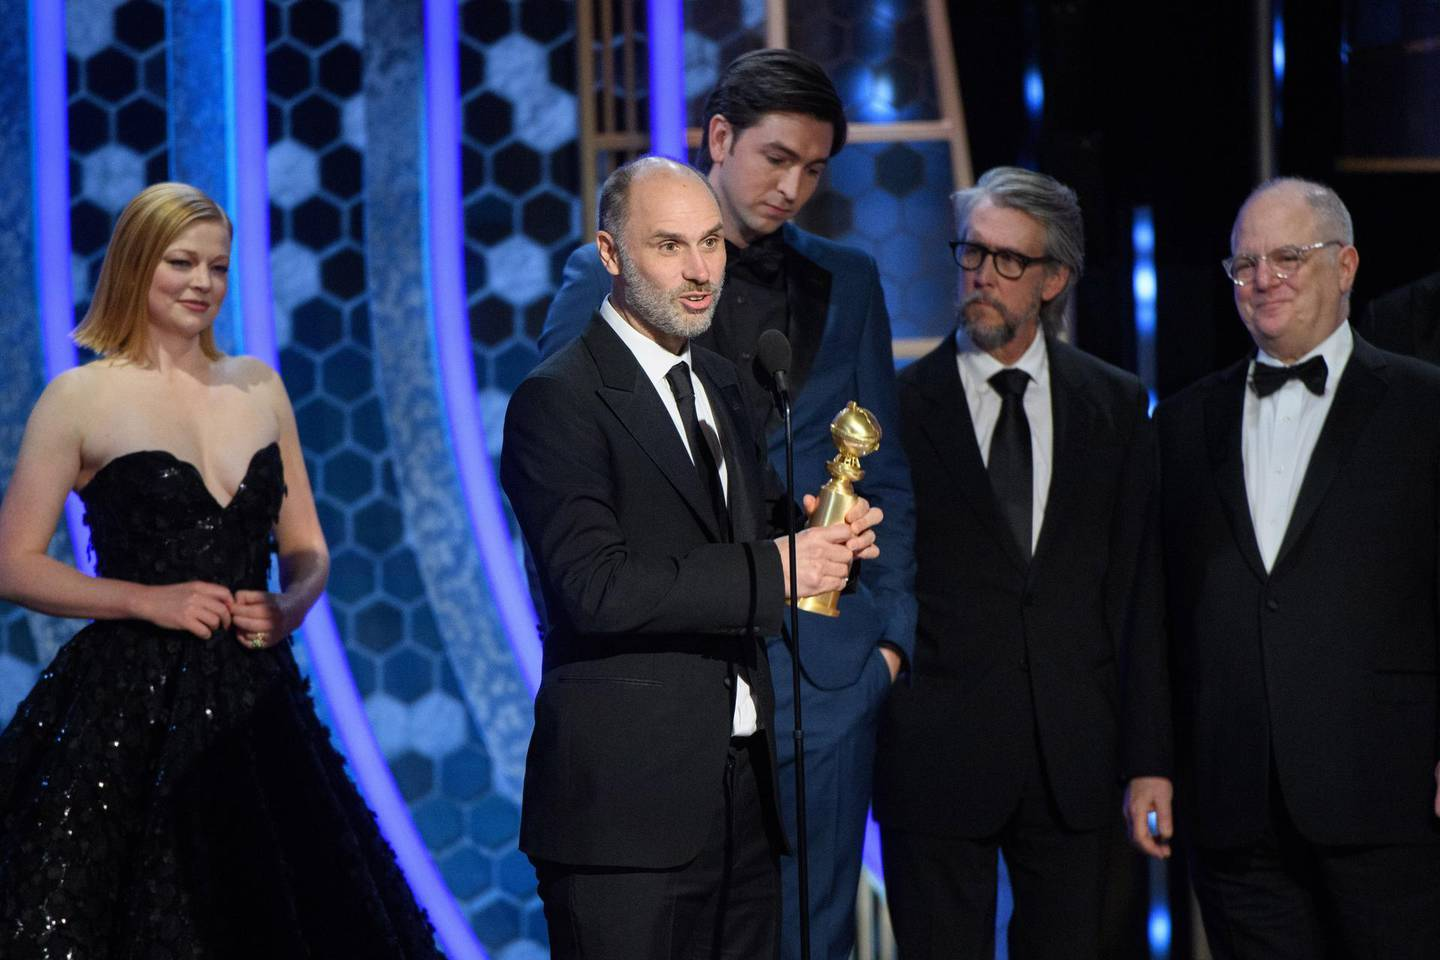 epa08106173 A handout photo made available by the Hollywood Foreign Press Association (HFPA) shows Jesse Armstrong (2-L) accepting the Golden Globe Award for Best Television Series - Drama for Succession during the 77th annual Golden Globe Awards ceremony at the Beverly Hilton Hotel, in Beverly Hills, California, USA, 05 January 2020.  EPA/HFPA / HANDOUT ATTENTION EDITORS: IMAGE MAY ONLY BE USED UNALTERED, ONE TIME USE ONLY WITHIN 60 DAYS MANDATORY CREDIT HANDOUT EDITORIAL USE ONLY/NO SALES